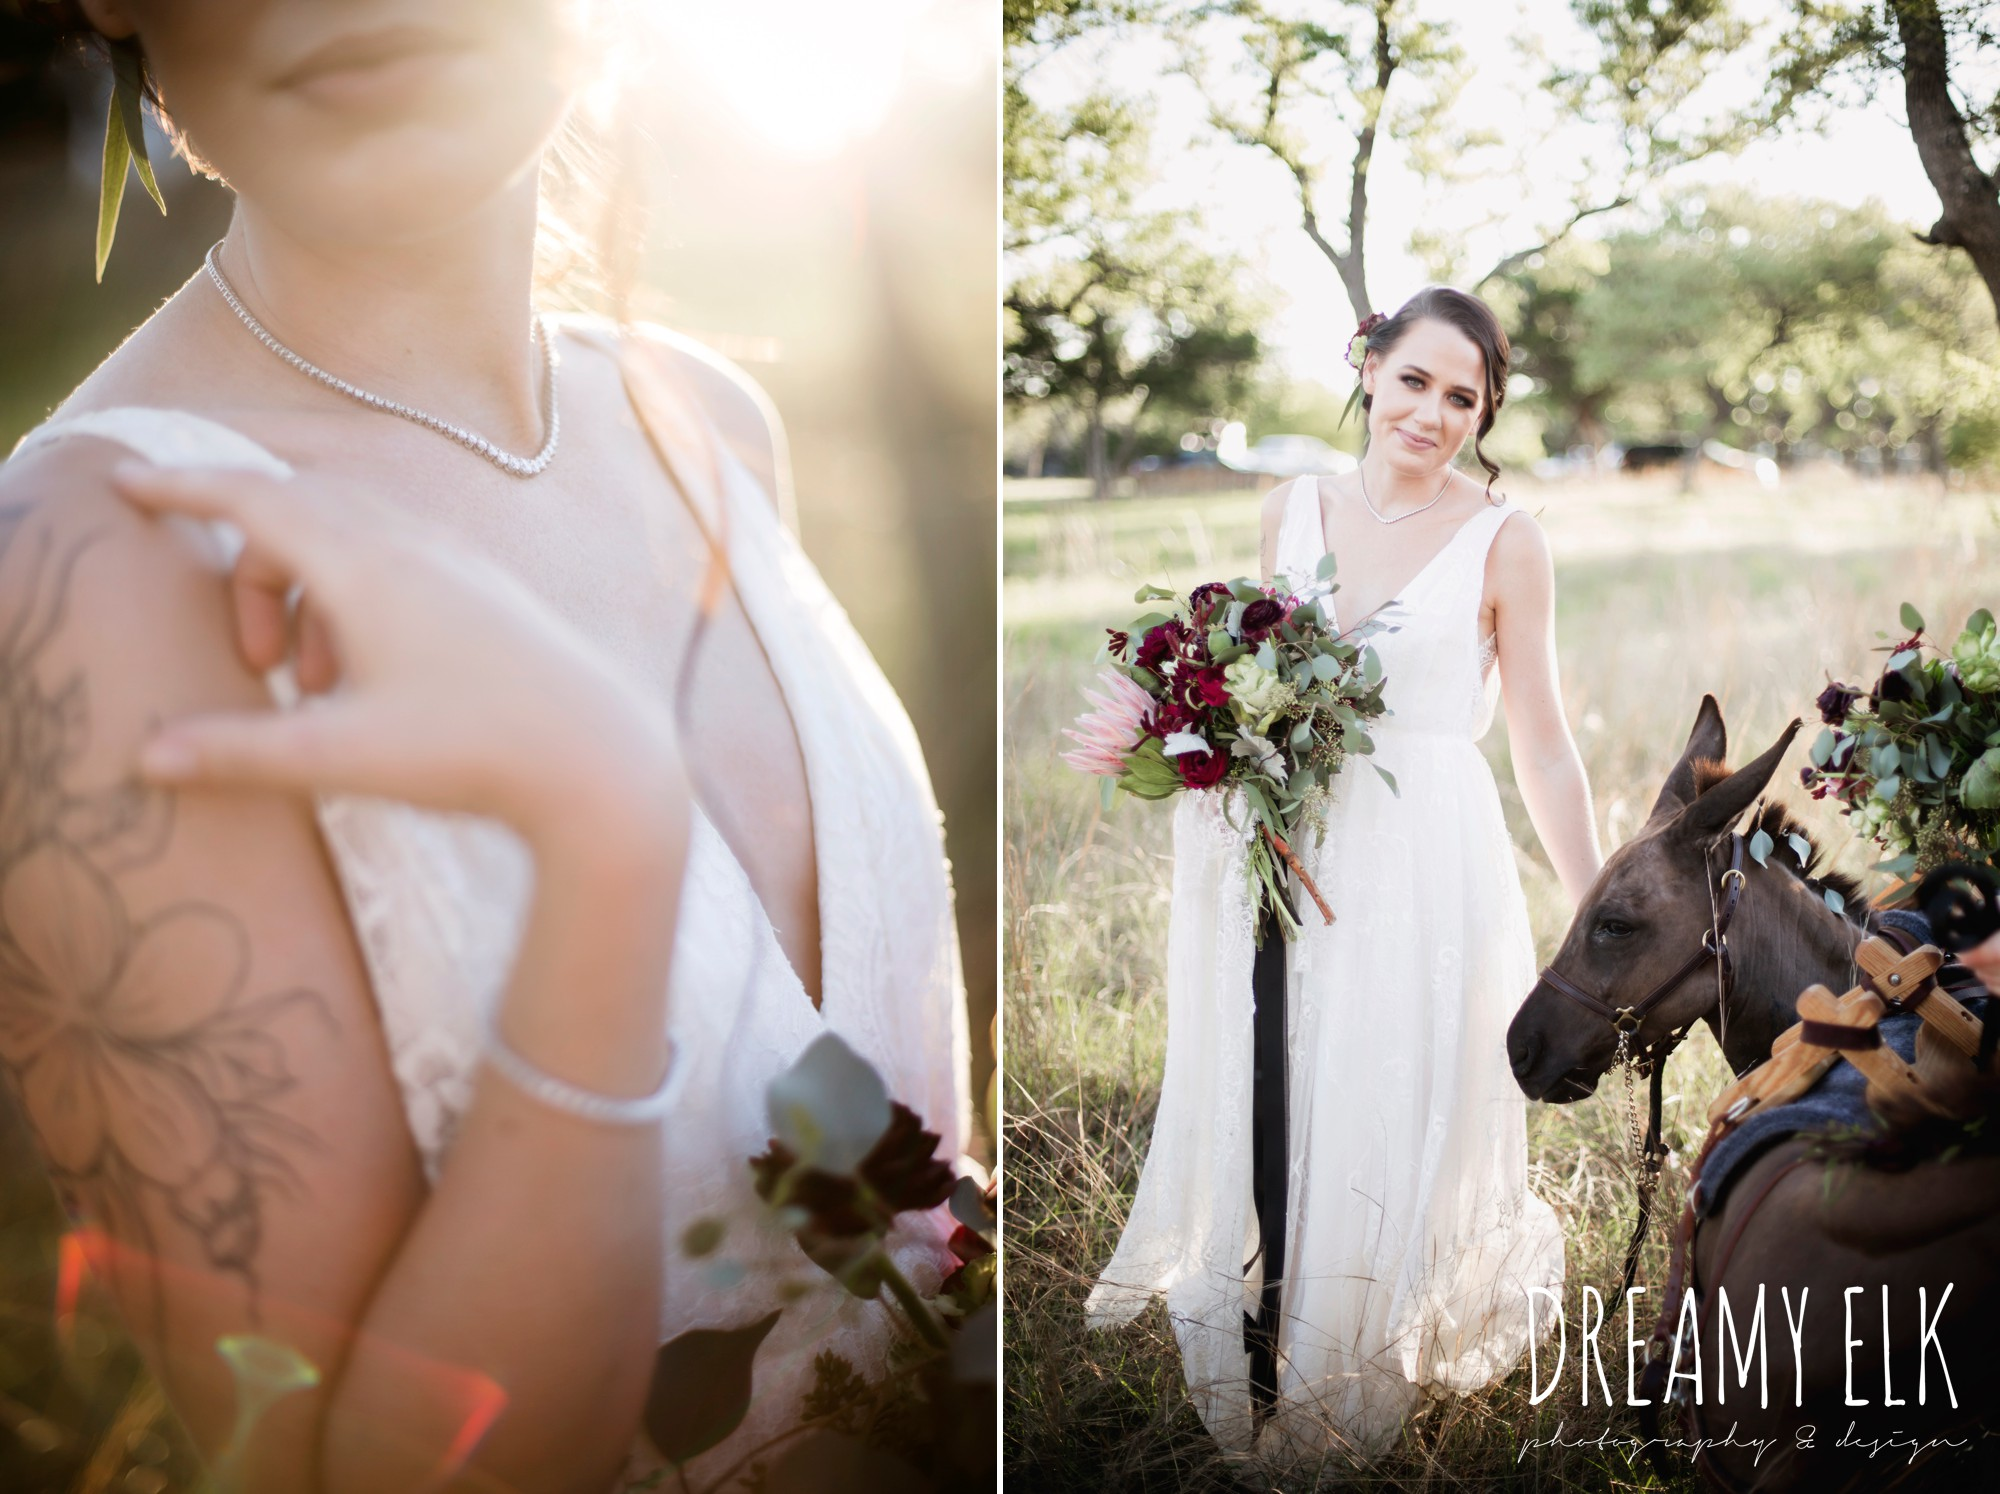 kirk root designs, the cedars ranch, libby cole creations, saint isabel bridal, melange bridal, glam gone good, ears with beers, moody rich delicate marfa inspired burgundy maroon black white spring styled wedding photo shoot {dreamy elk photography and design}